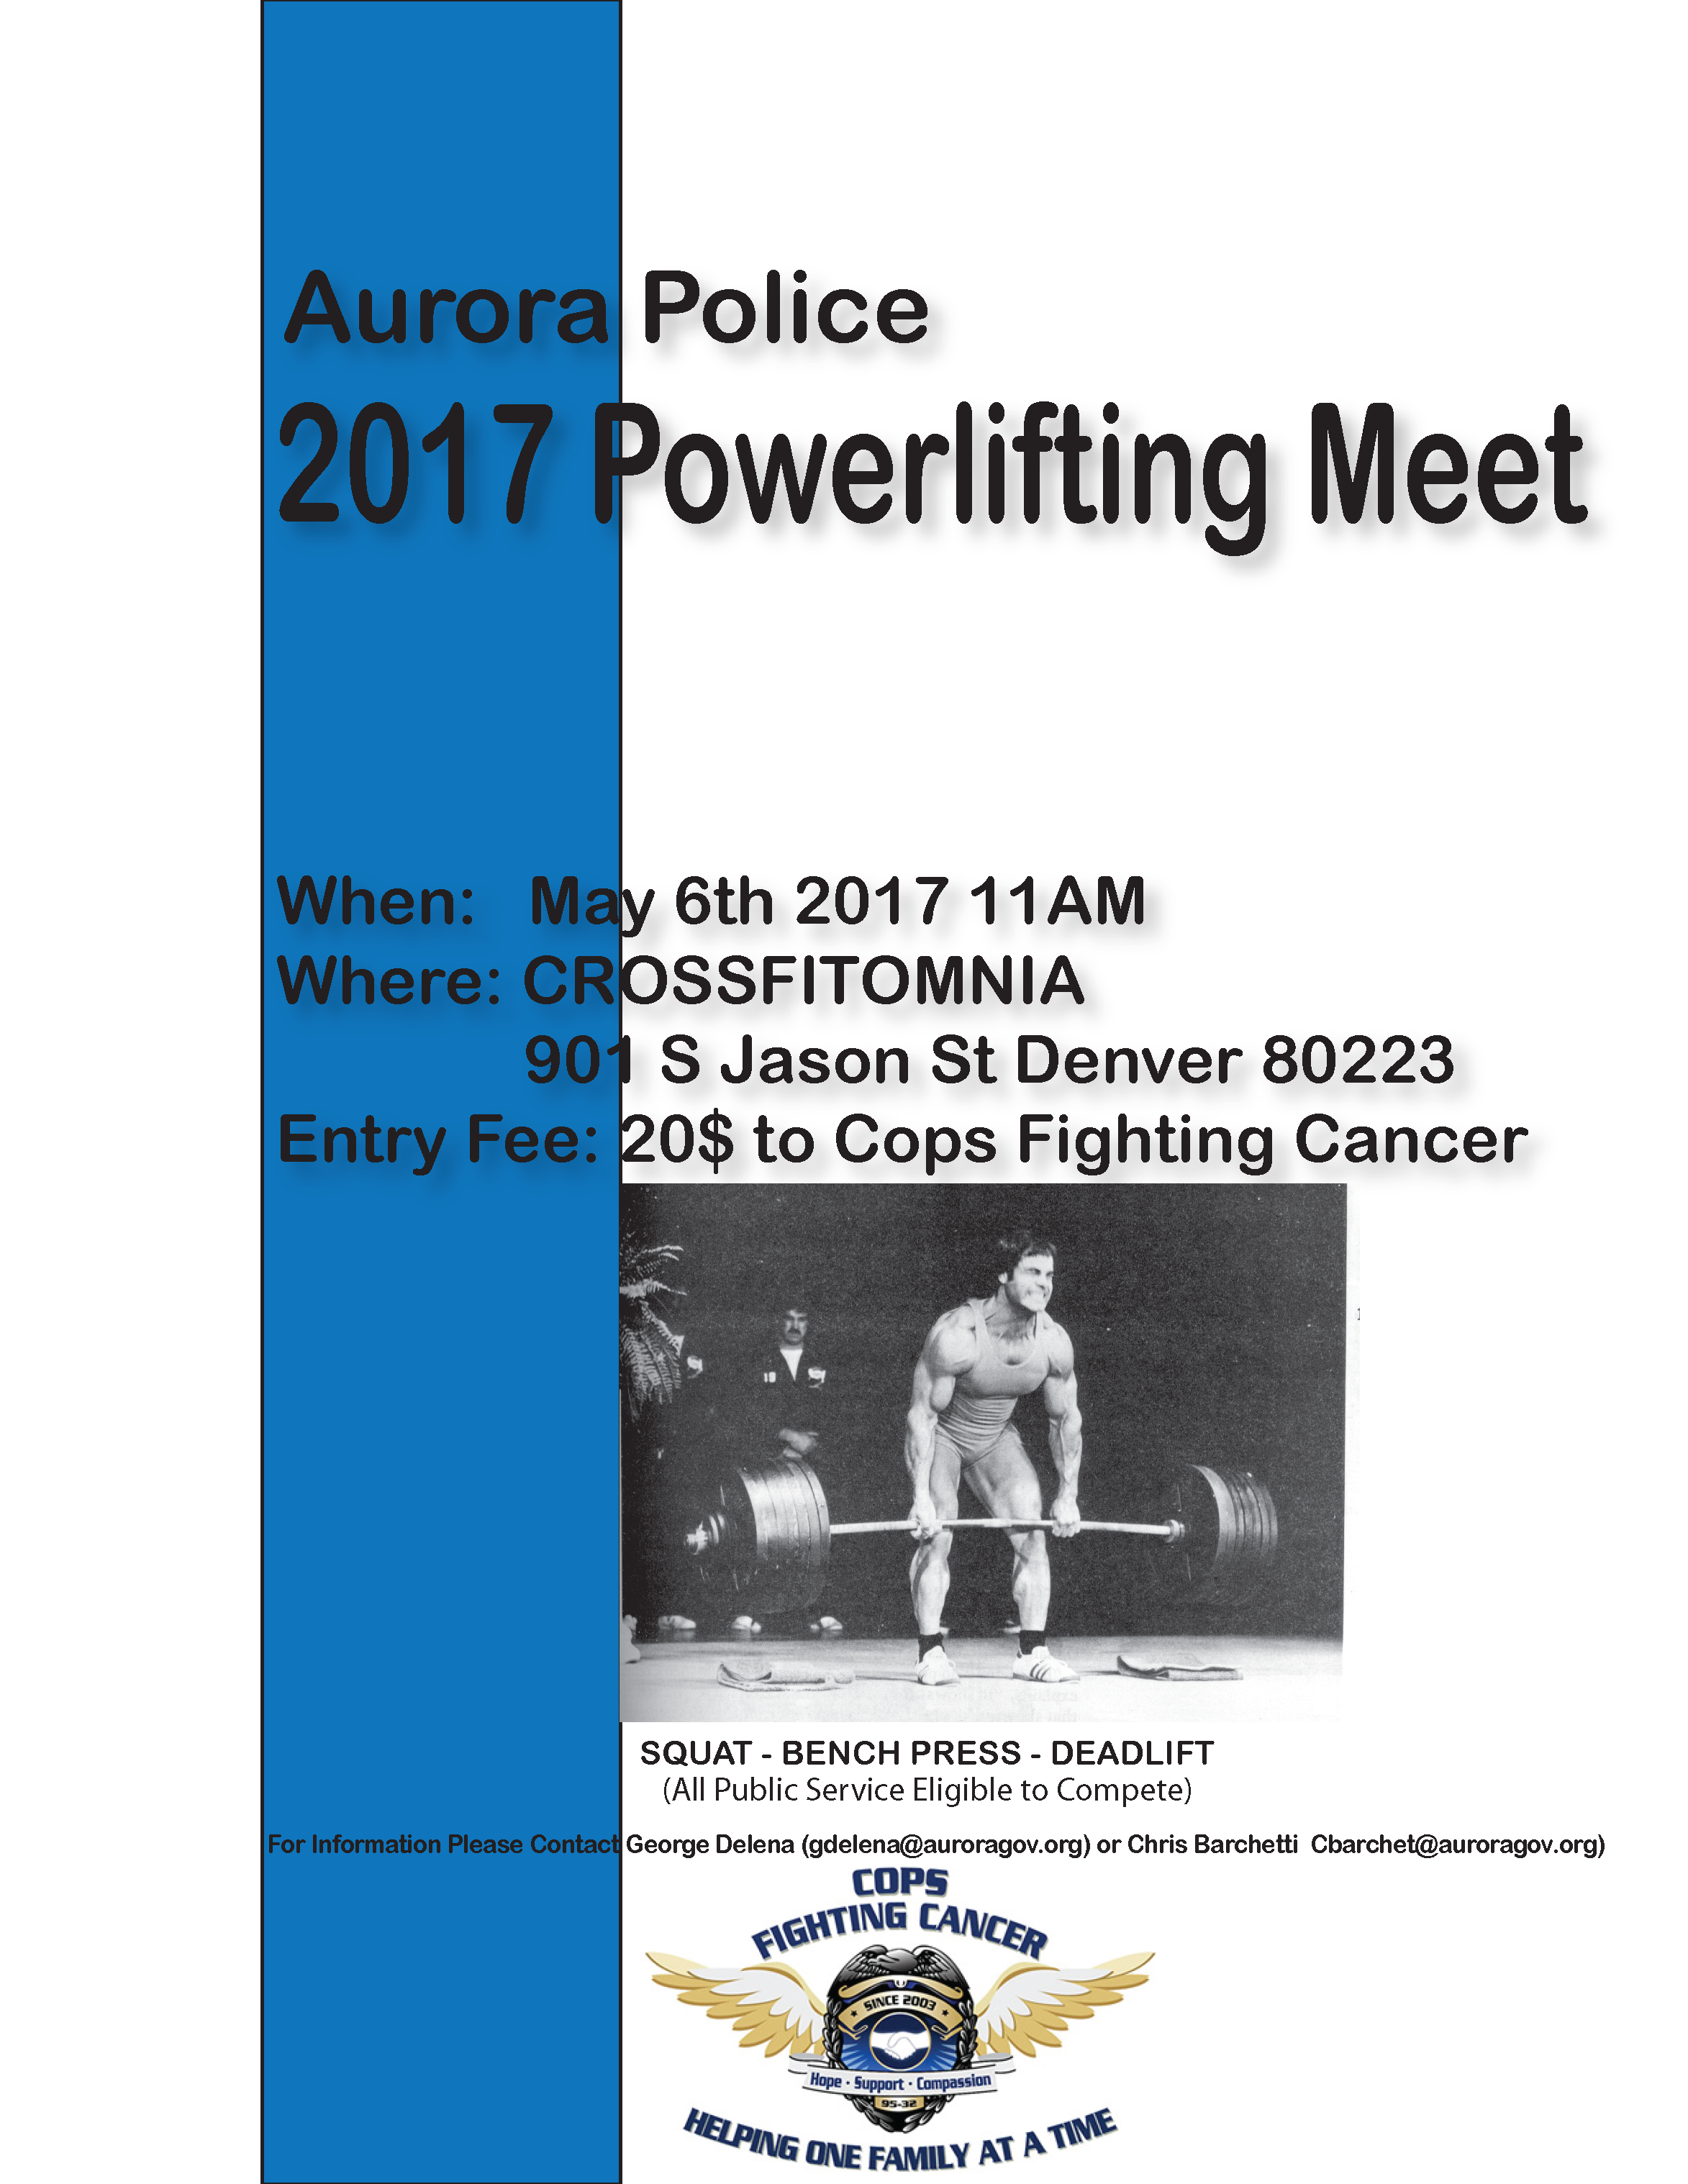 2017APDMeetFlyer Aurora Police 2017 Powerlifting Meet